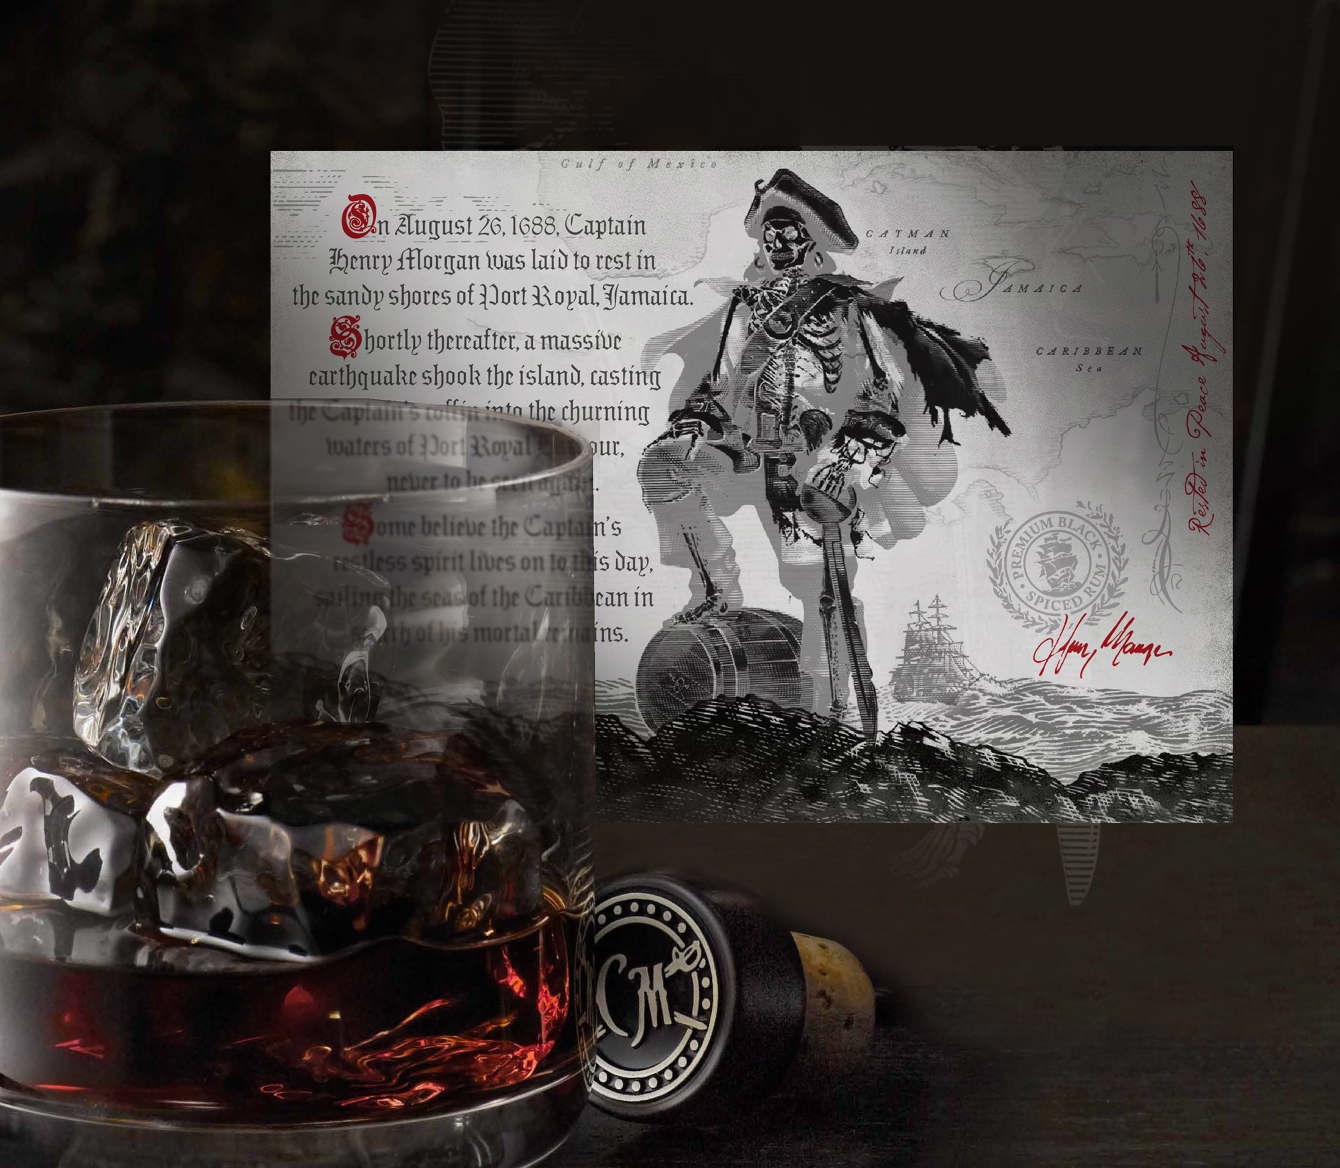 As the bottle is emptied, a wicked and witty image of the ghost Captain is revealed along with his legend.